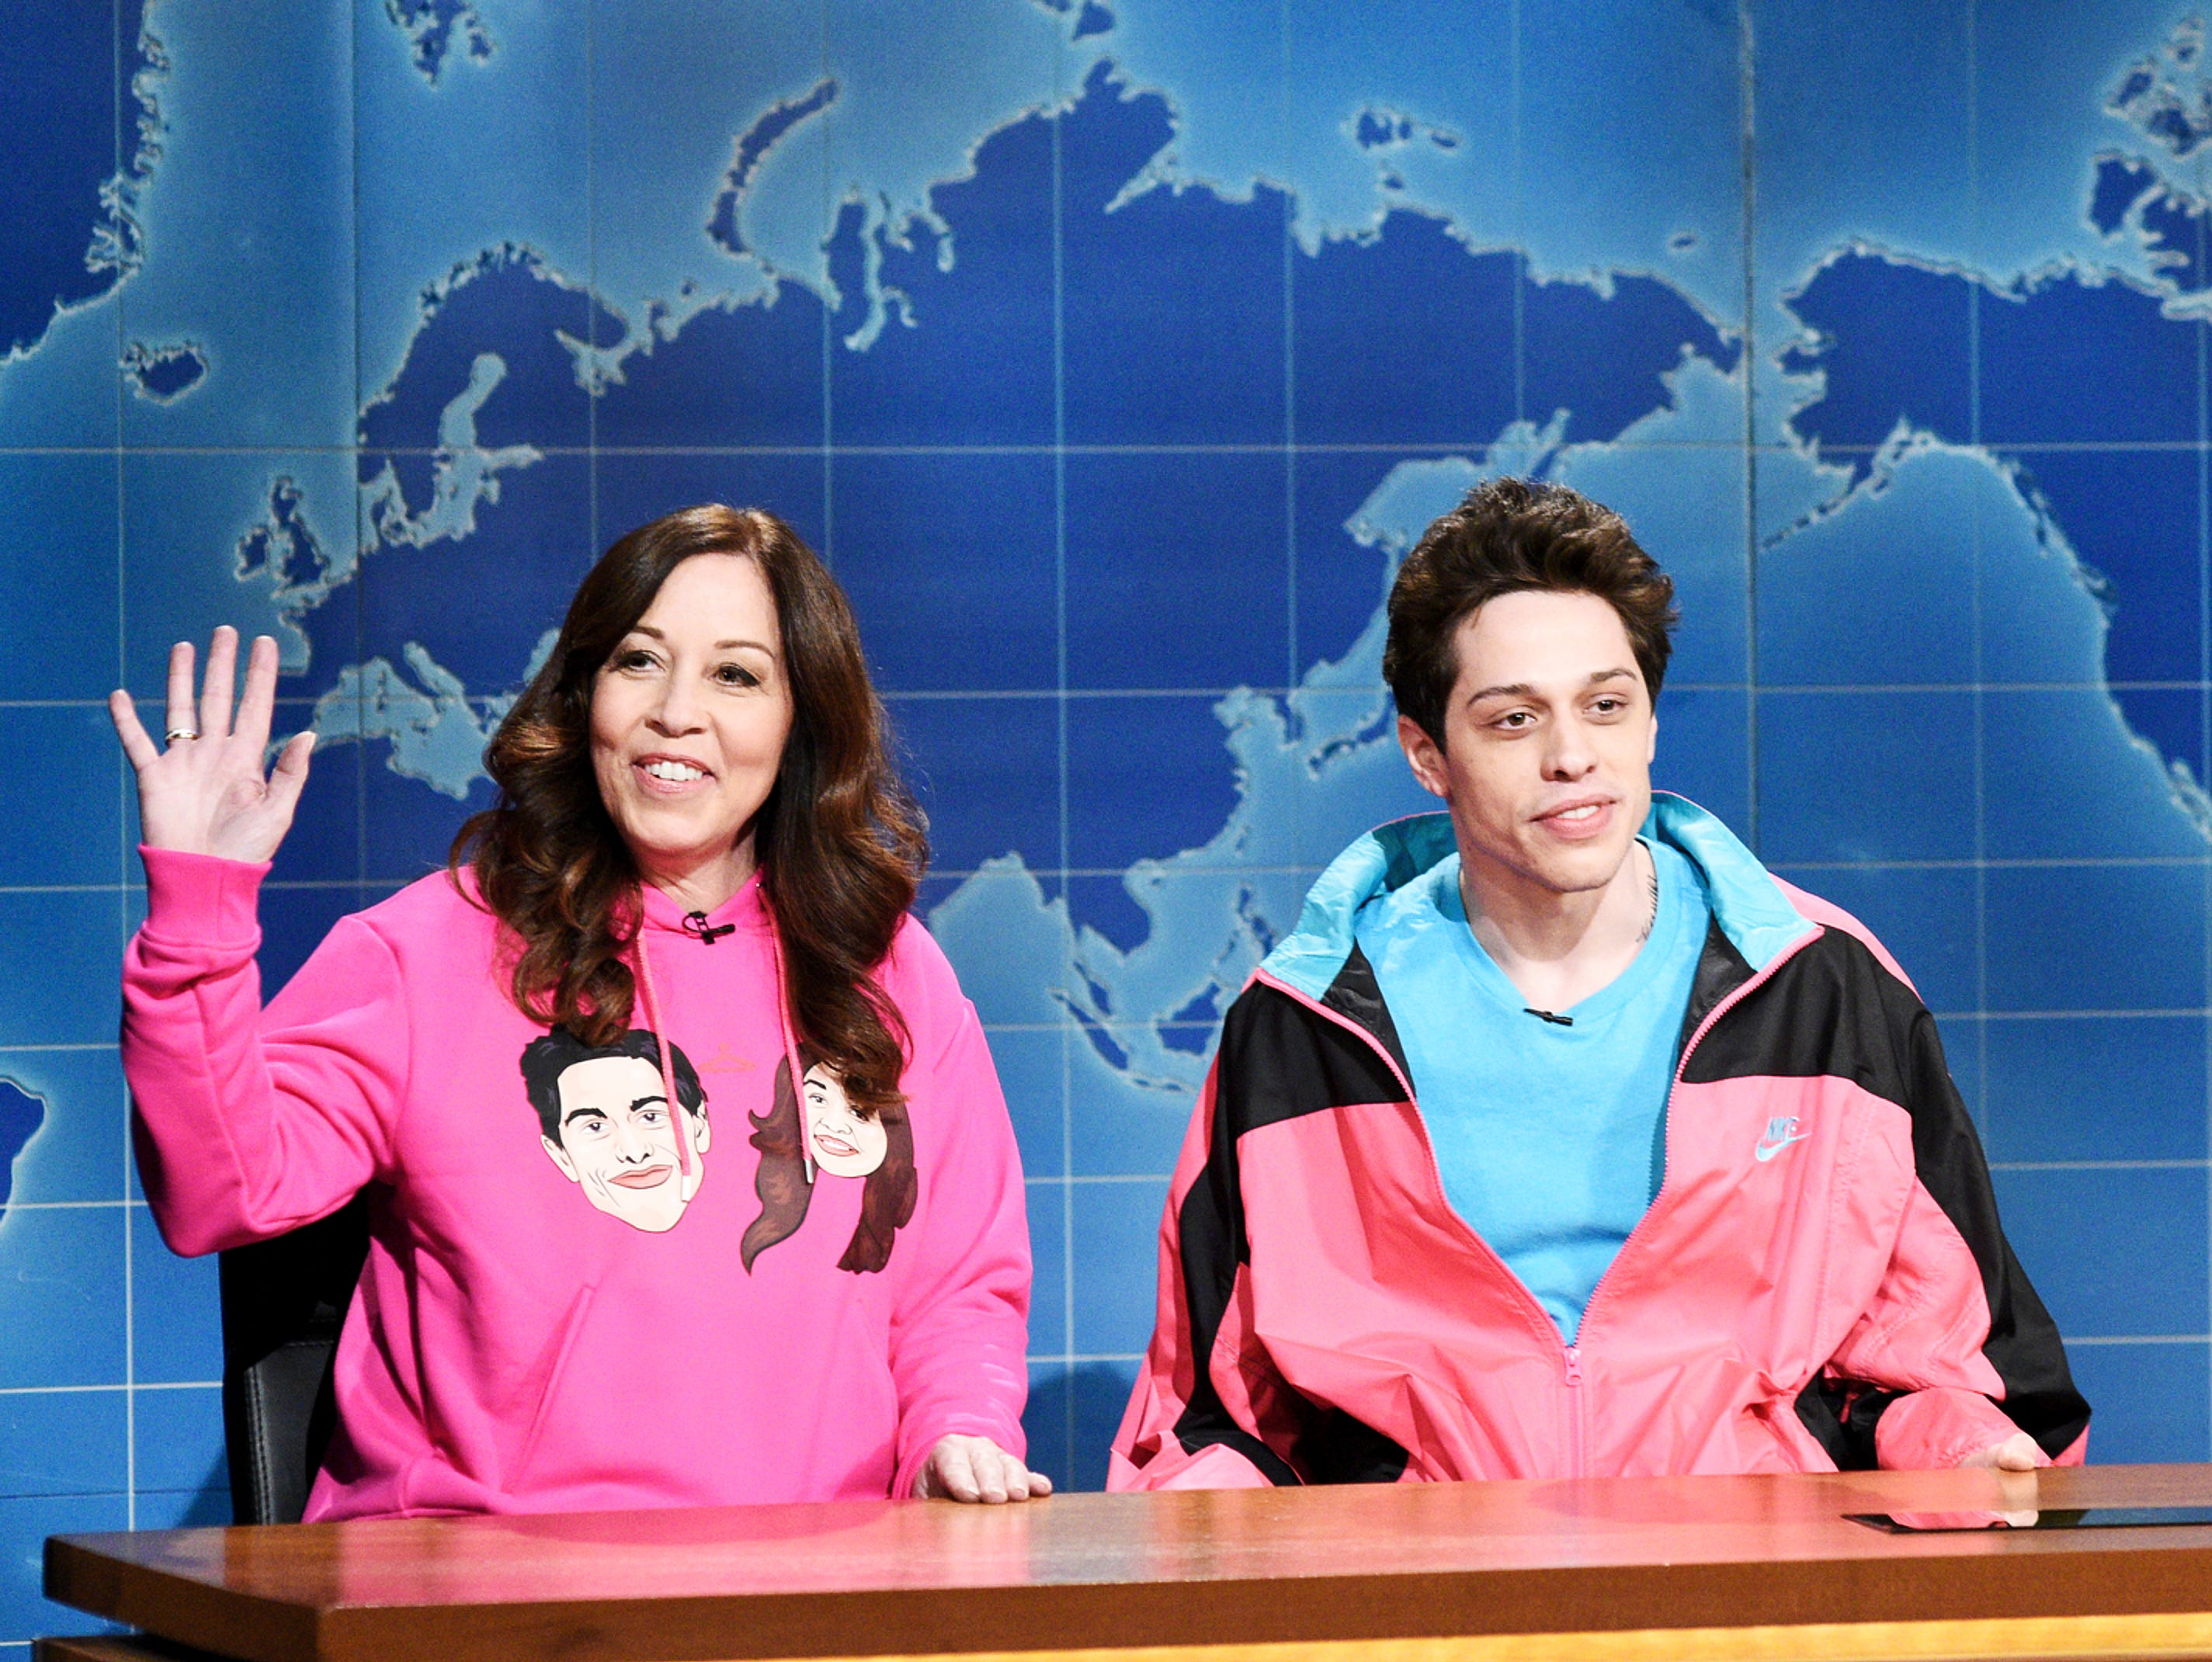 """For Mother's Day, Pete Davidson brought up his own mother, Amy, for """"Weekend Update."""" He tried to get his mom a date with Jon Hamm, who actually did show up during the show's goodbyes. A picture posted on the """"SNL"""" Twitter account later showed Hamm hugging Pete's mom backstage after the show. Nice job, Pete!"""